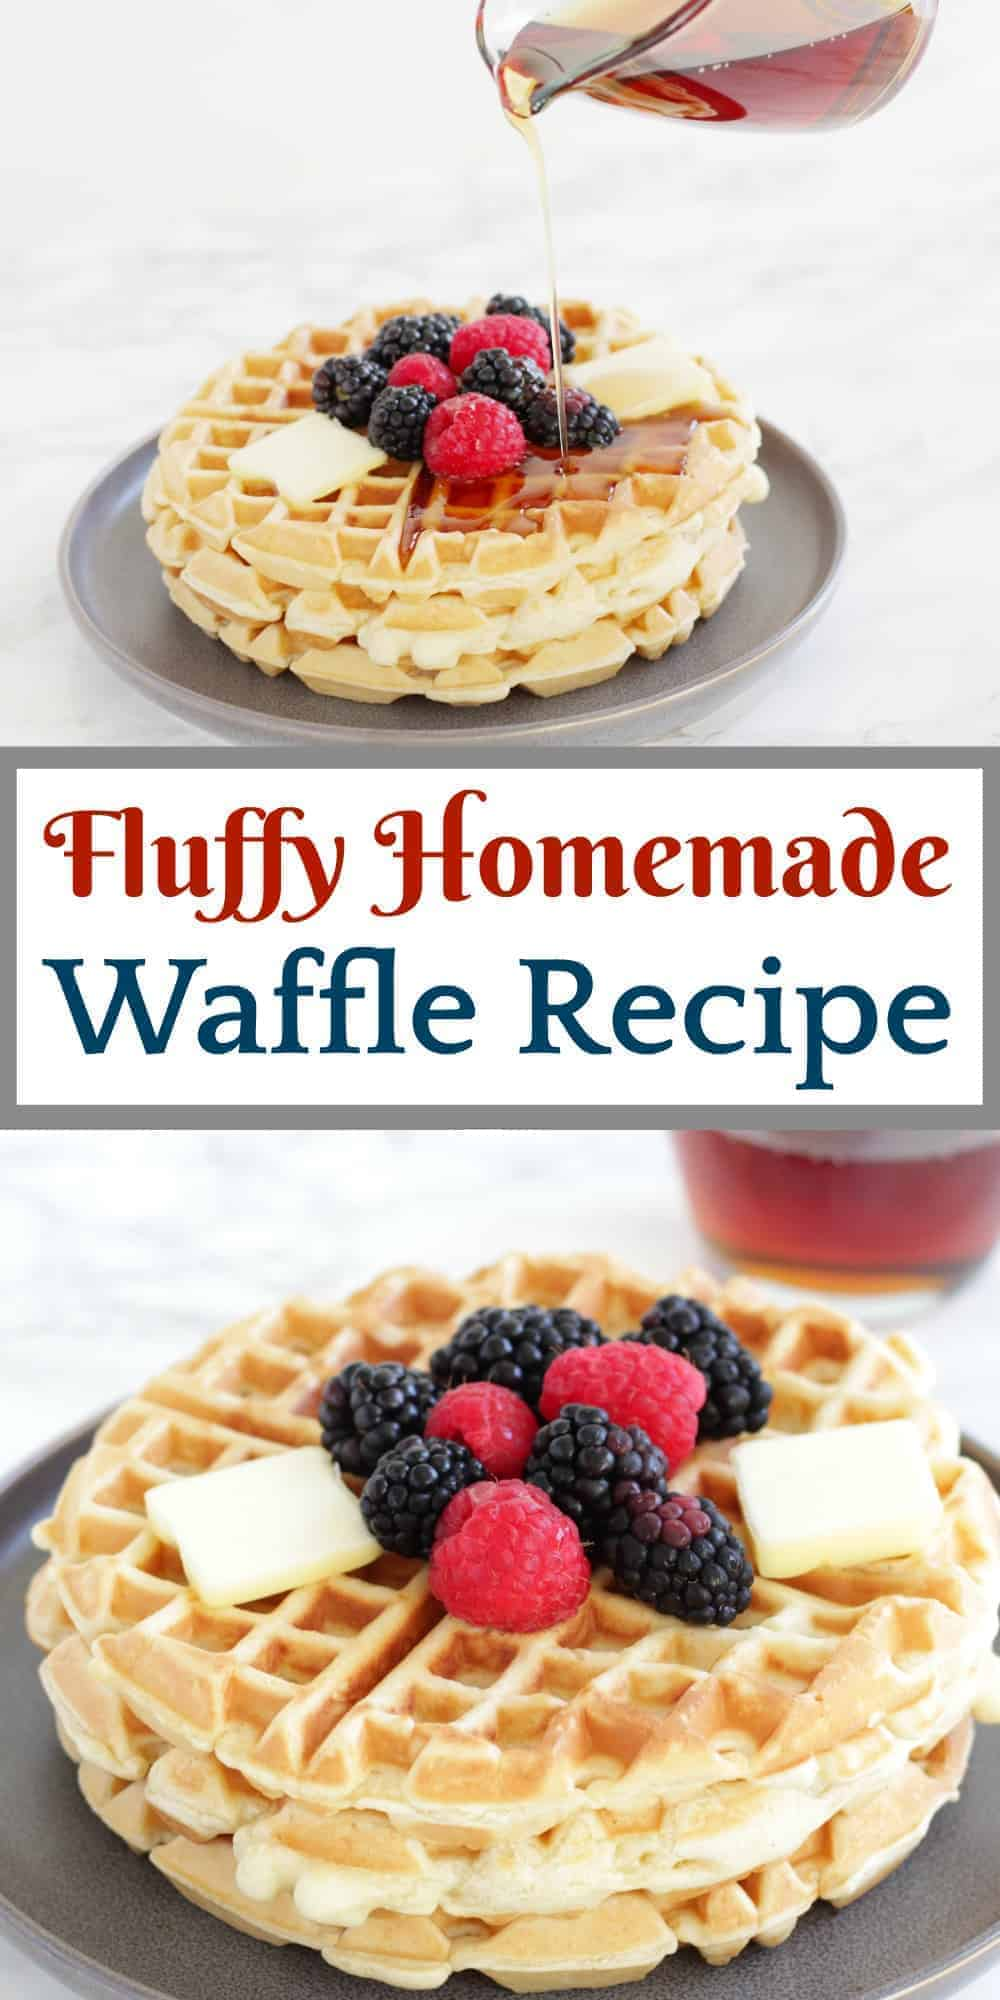 Fluffy homemade waffles